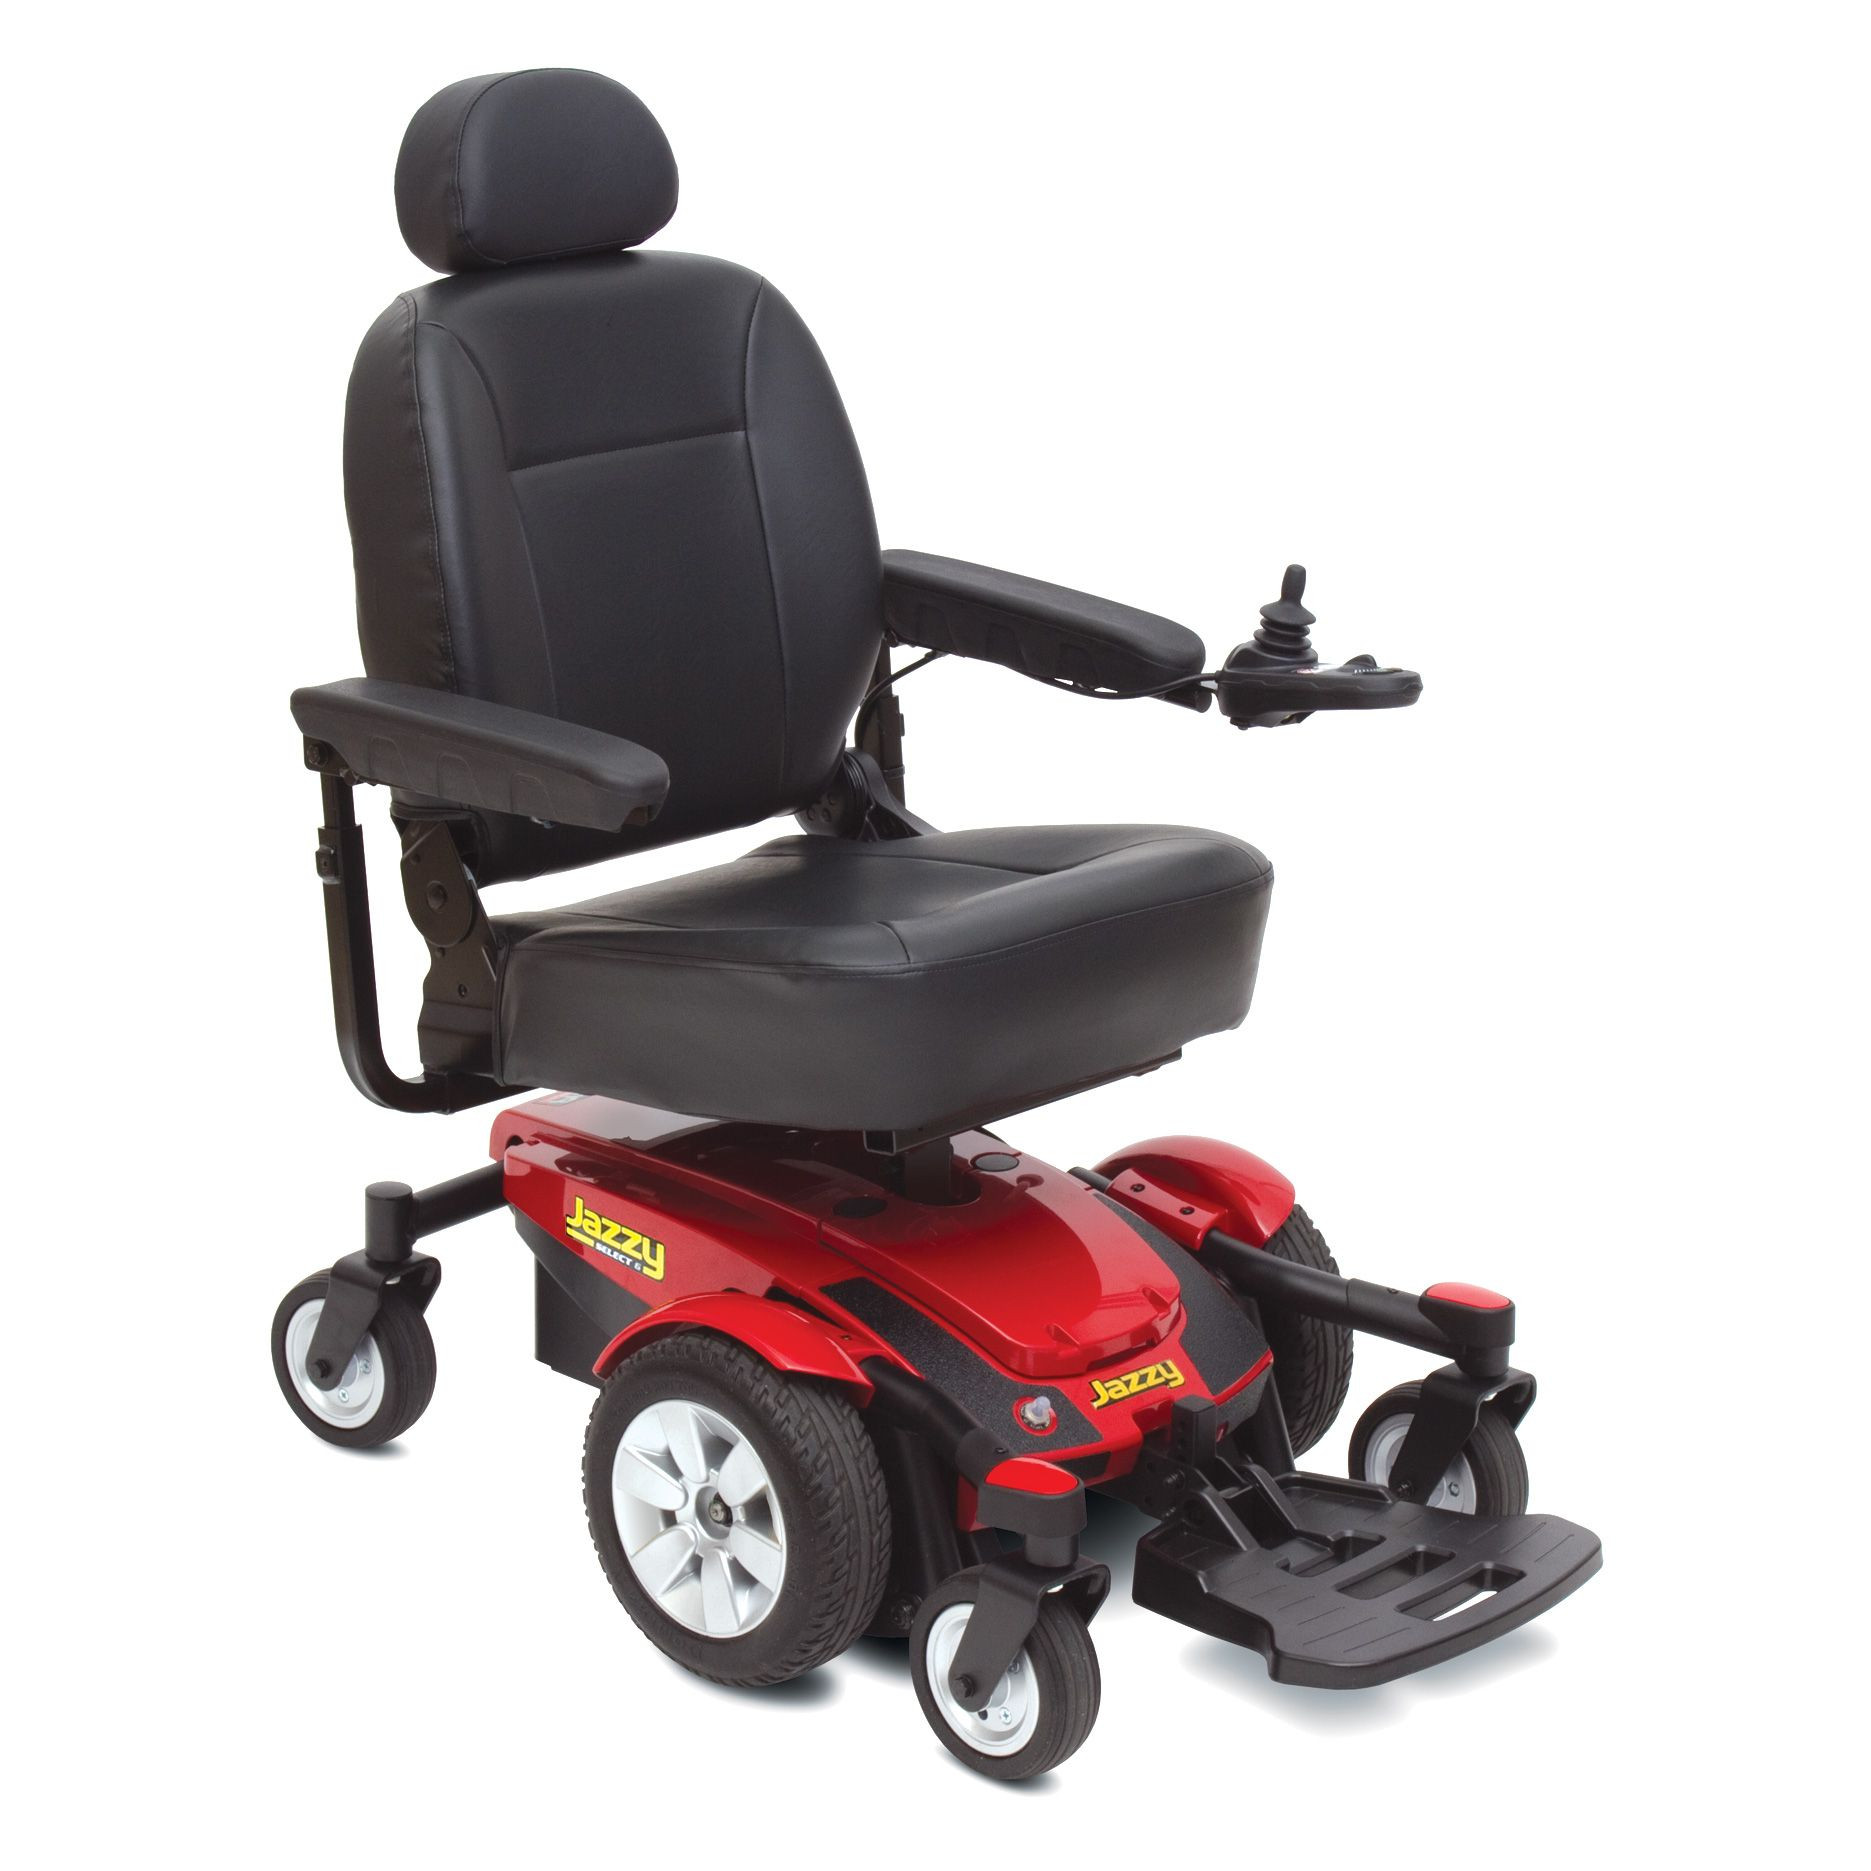 Motorized Wheel Chairs Jazzy Select 6 Power Wheelchair For Sale Lowest Prices